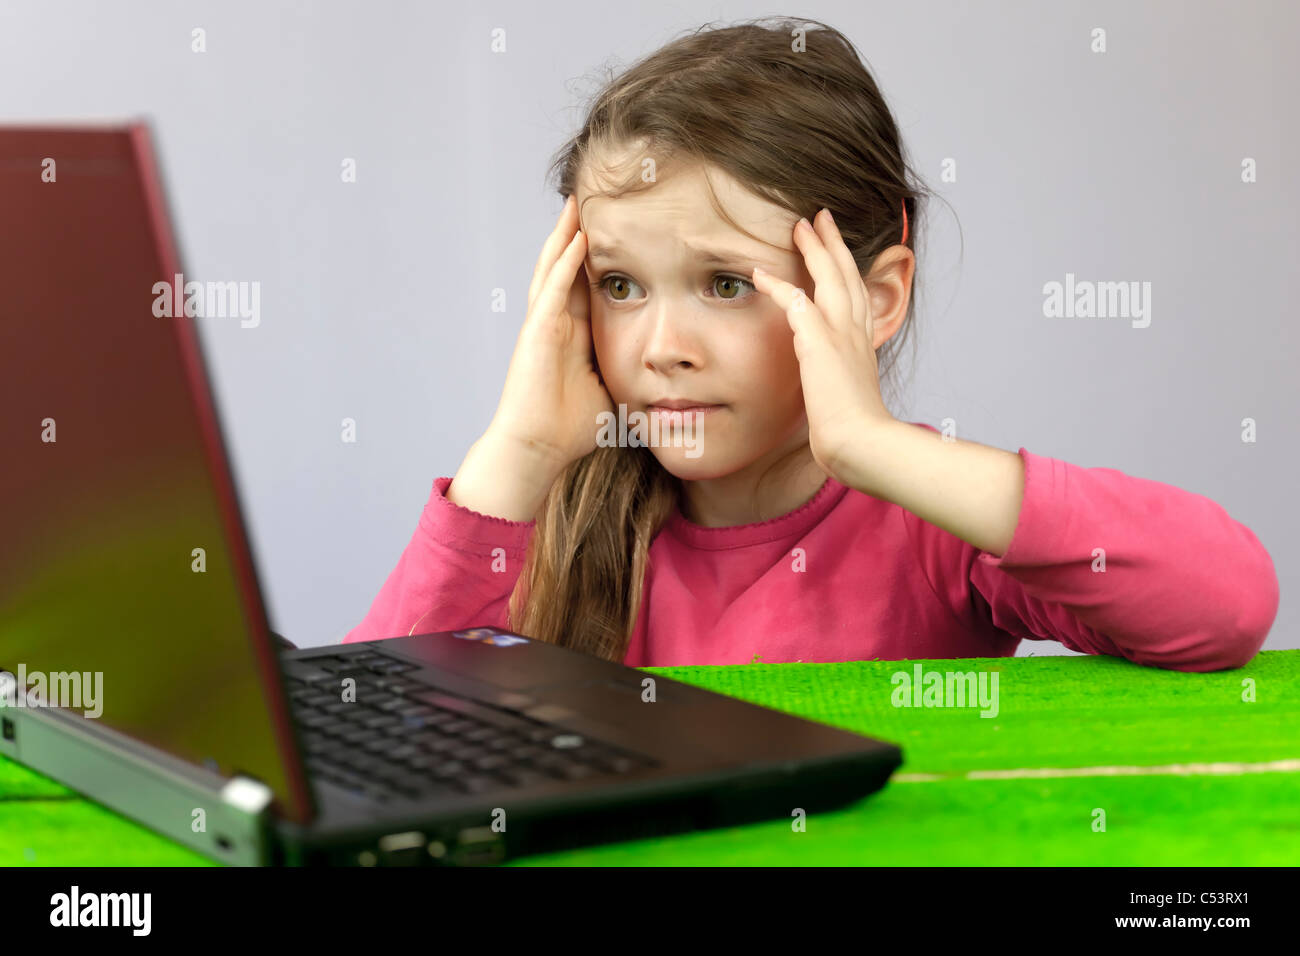 a girl at the laptop, which has difficulty with homework - Stock Image